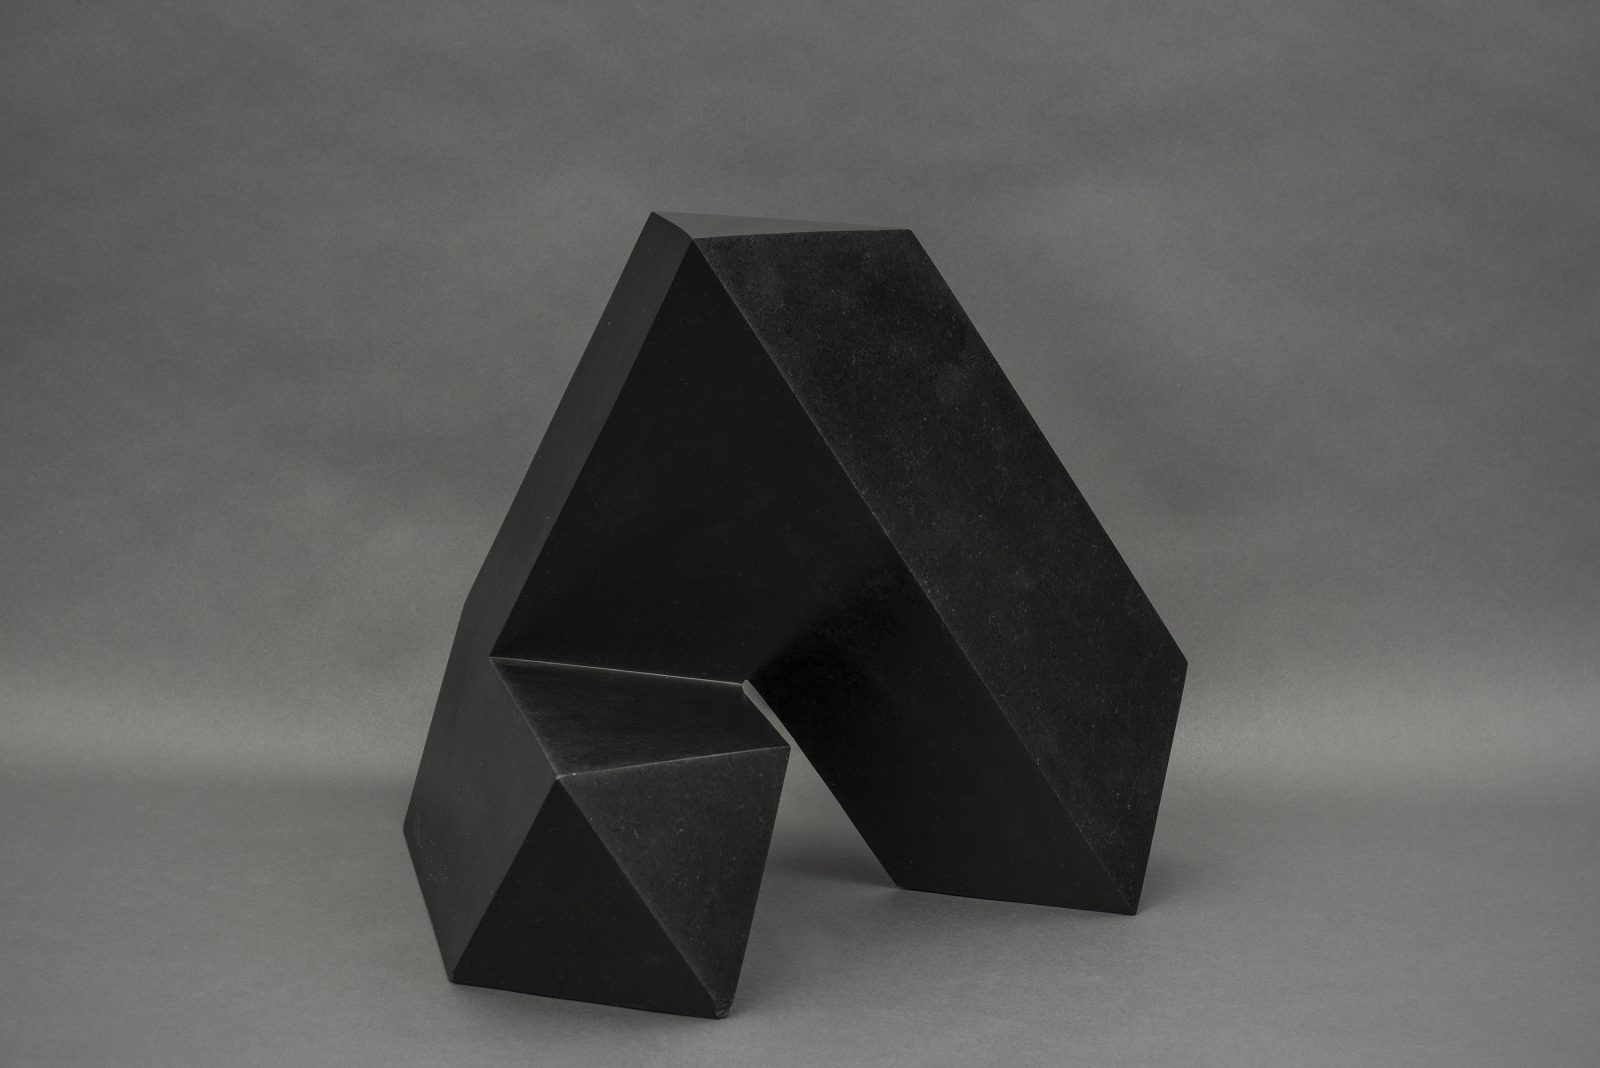 """Spitball"" is an abstract, black, geometric sculpture made of ebony granite"